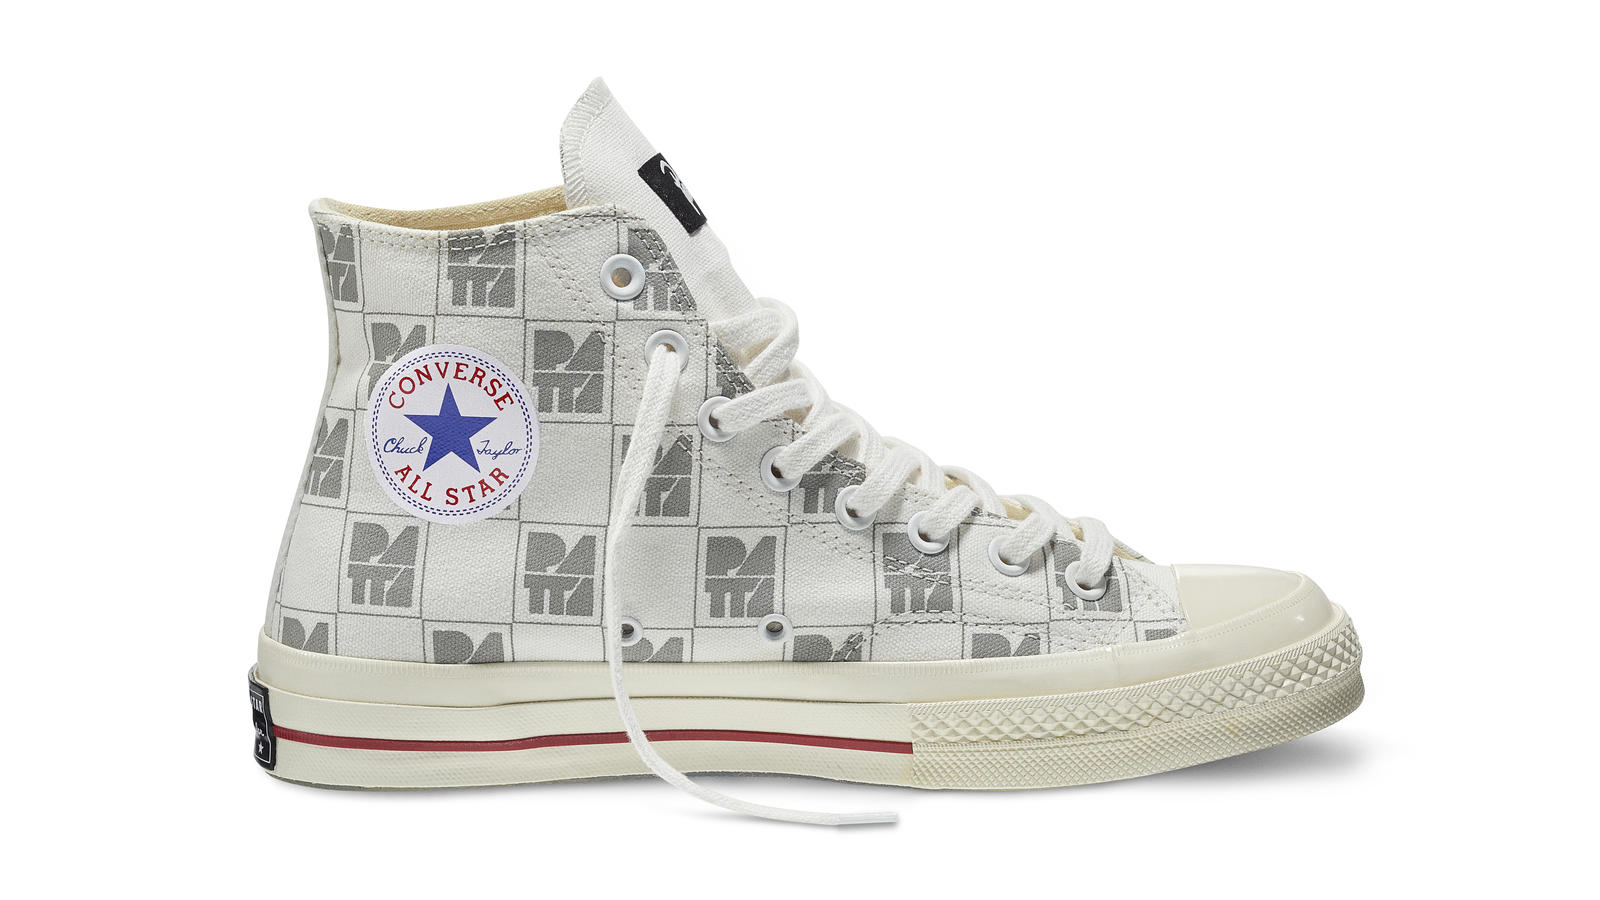 Converse All Star Ct70 Patta10 White Gray Original